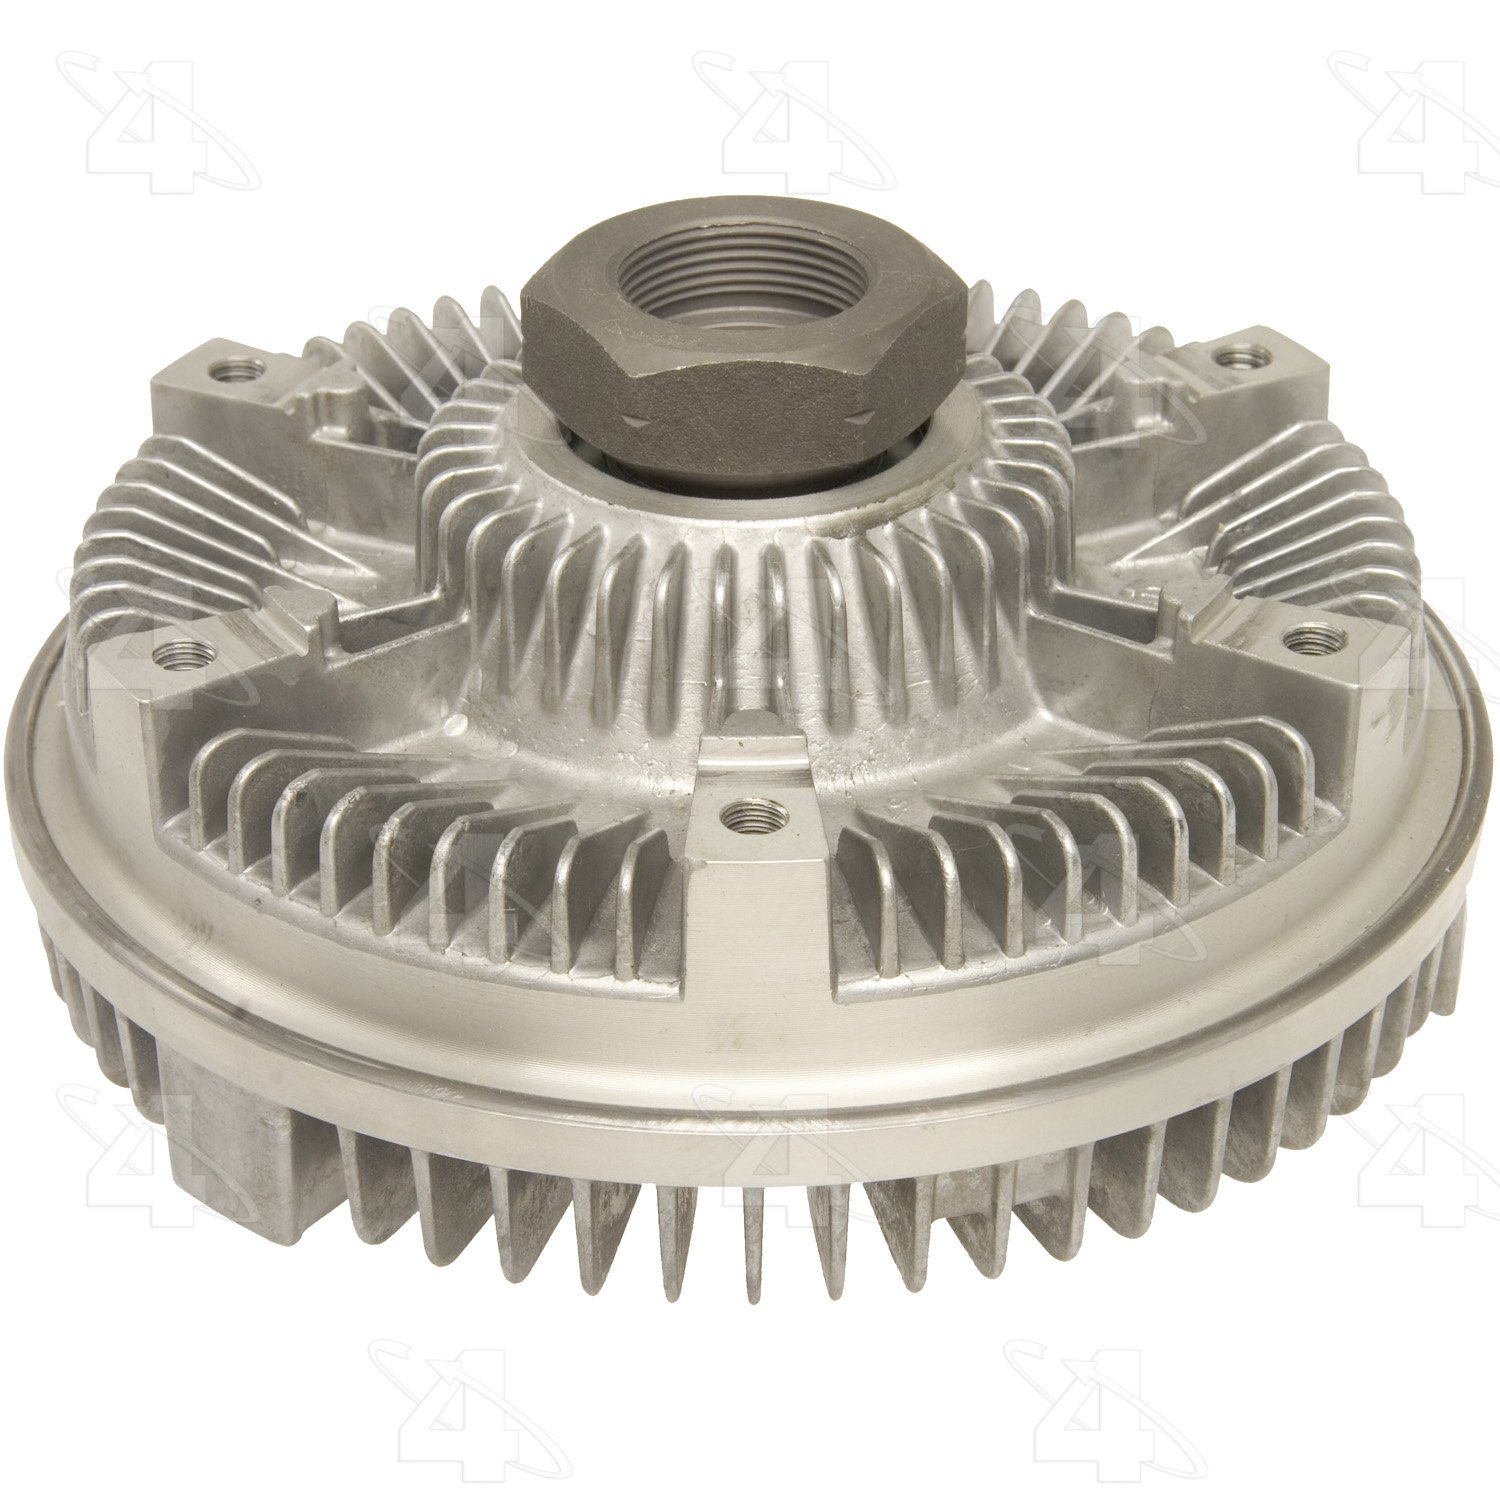 Four Seasons 36963 Fan Clutch rm-FSA-36963